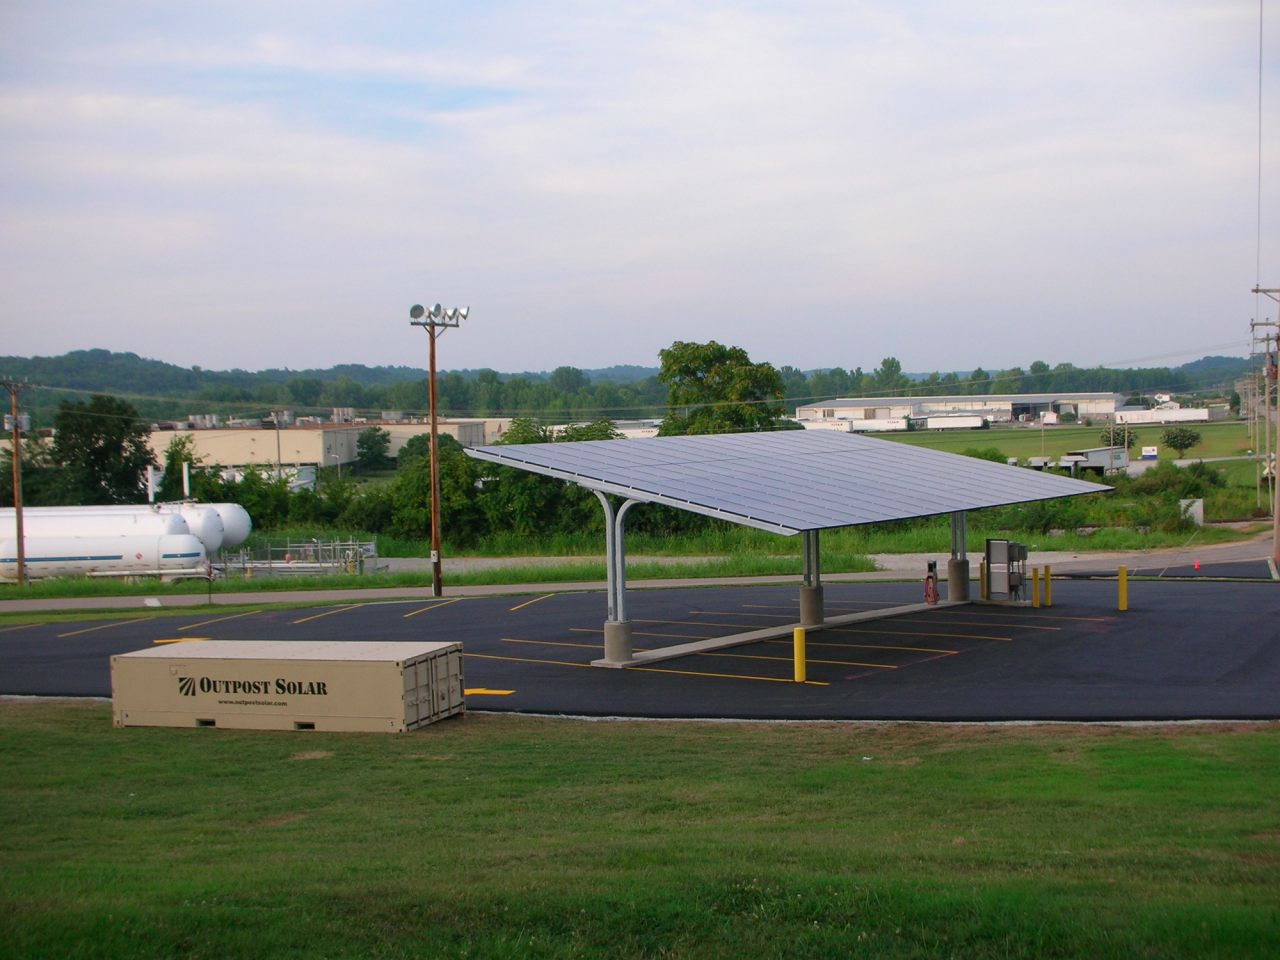 Solar Carport in Pulaski, Tennessee